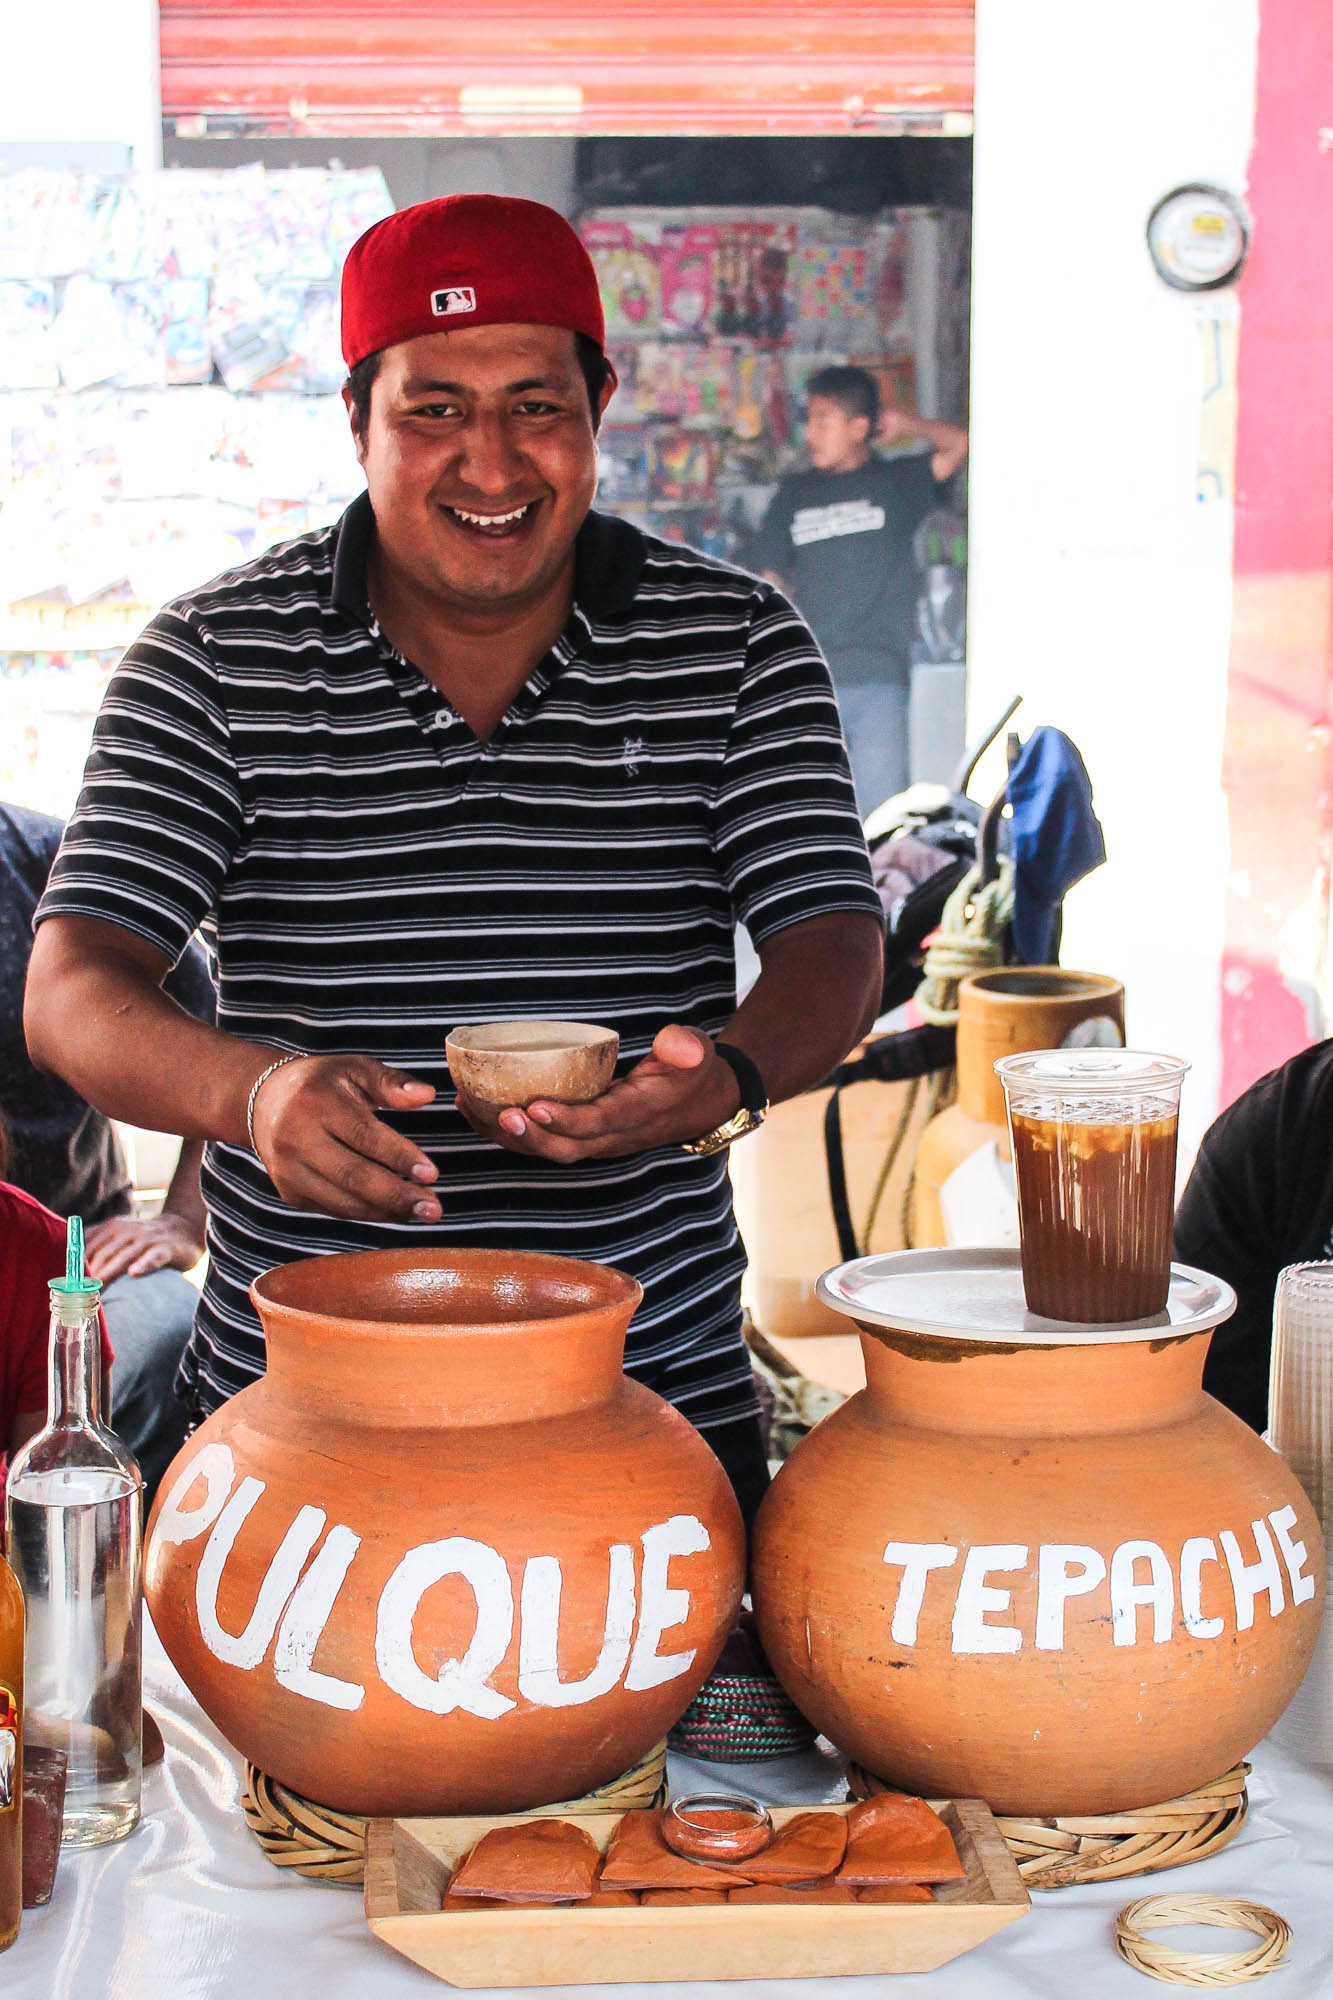 This lovely + happy human at Tlacolula market